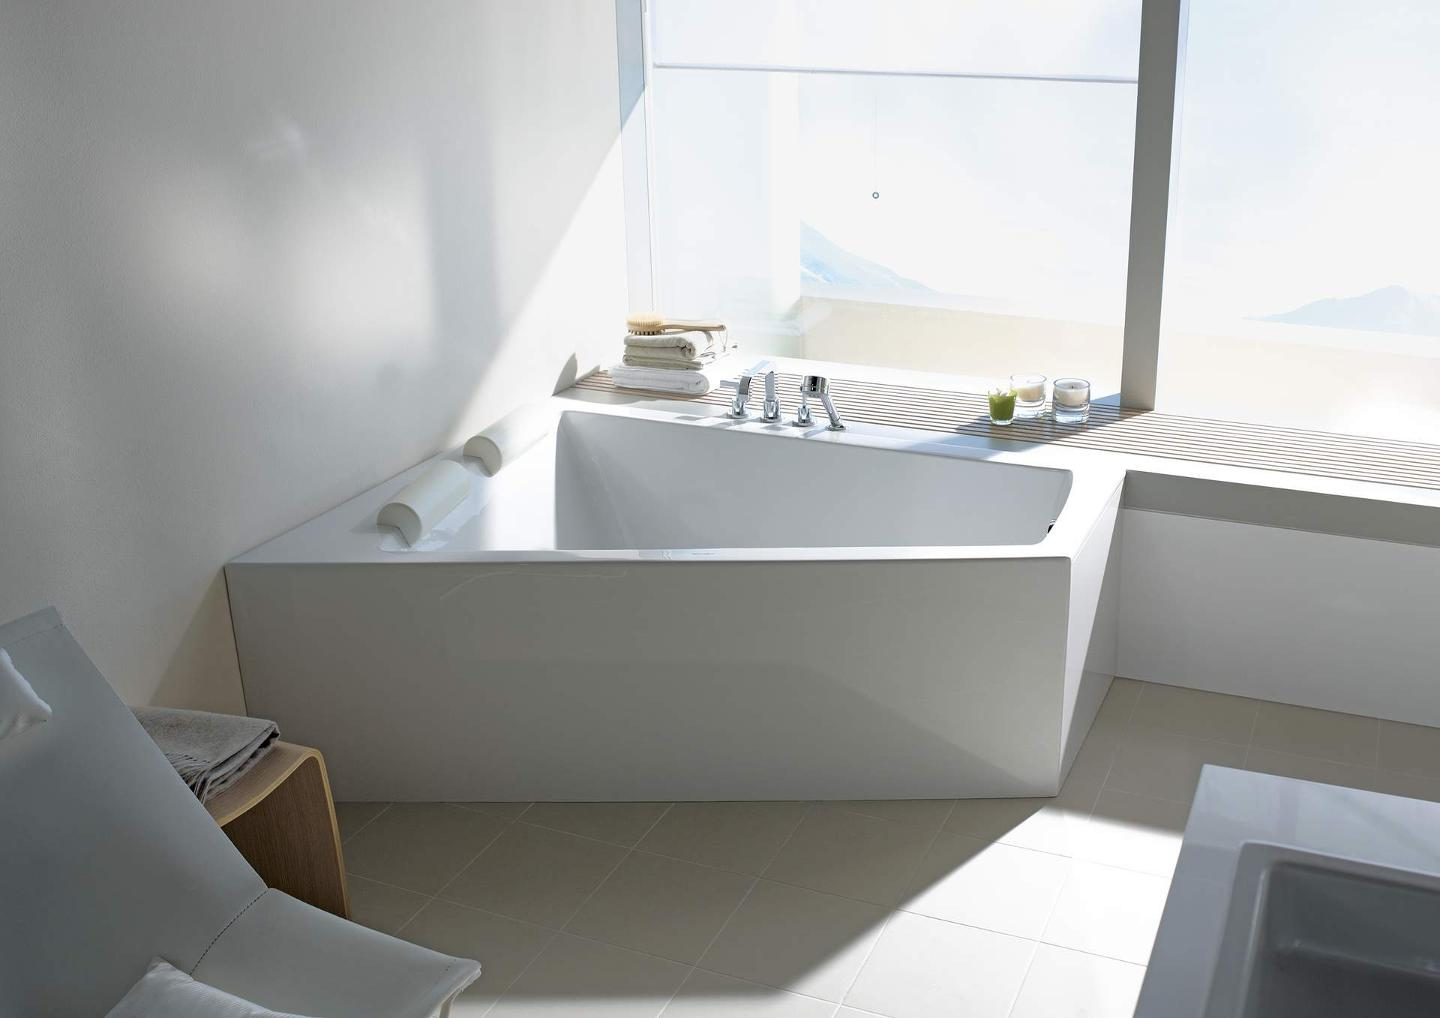 Duravit Paiova: The two person bathtub | Duravit